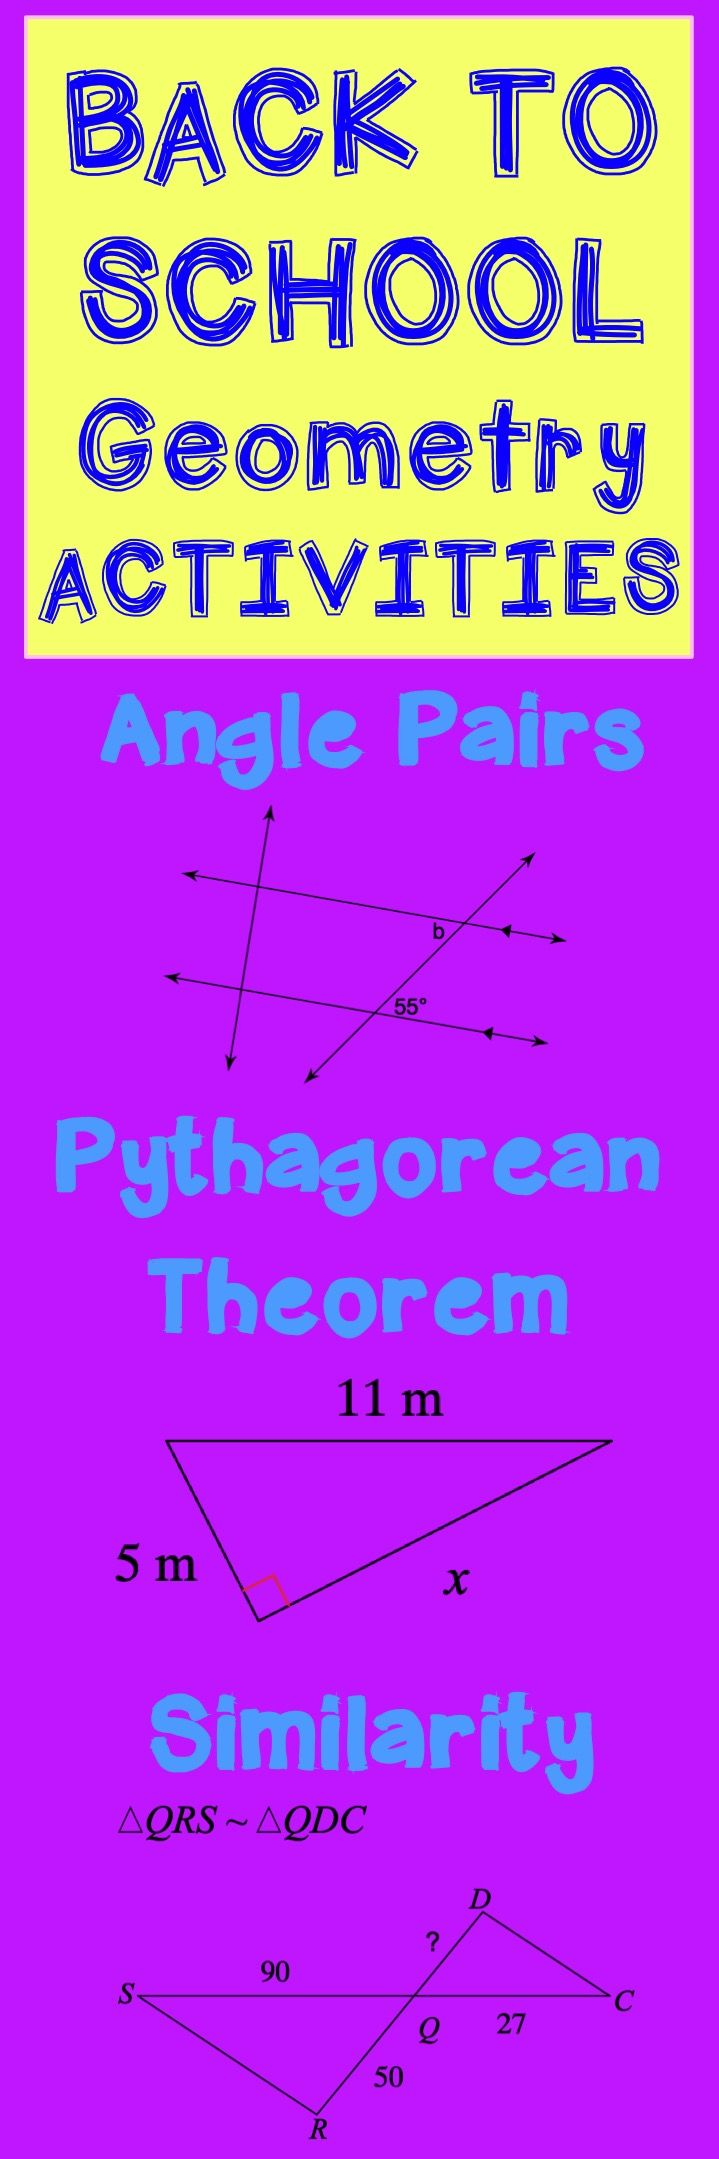 Back to School Geometry activities for the school year! Linear pairs, vertical angles, transversals and parallel lines, pythagorean theorem, similar triangles, right triangle trigonometry, area, volume, circle theorems, and more!